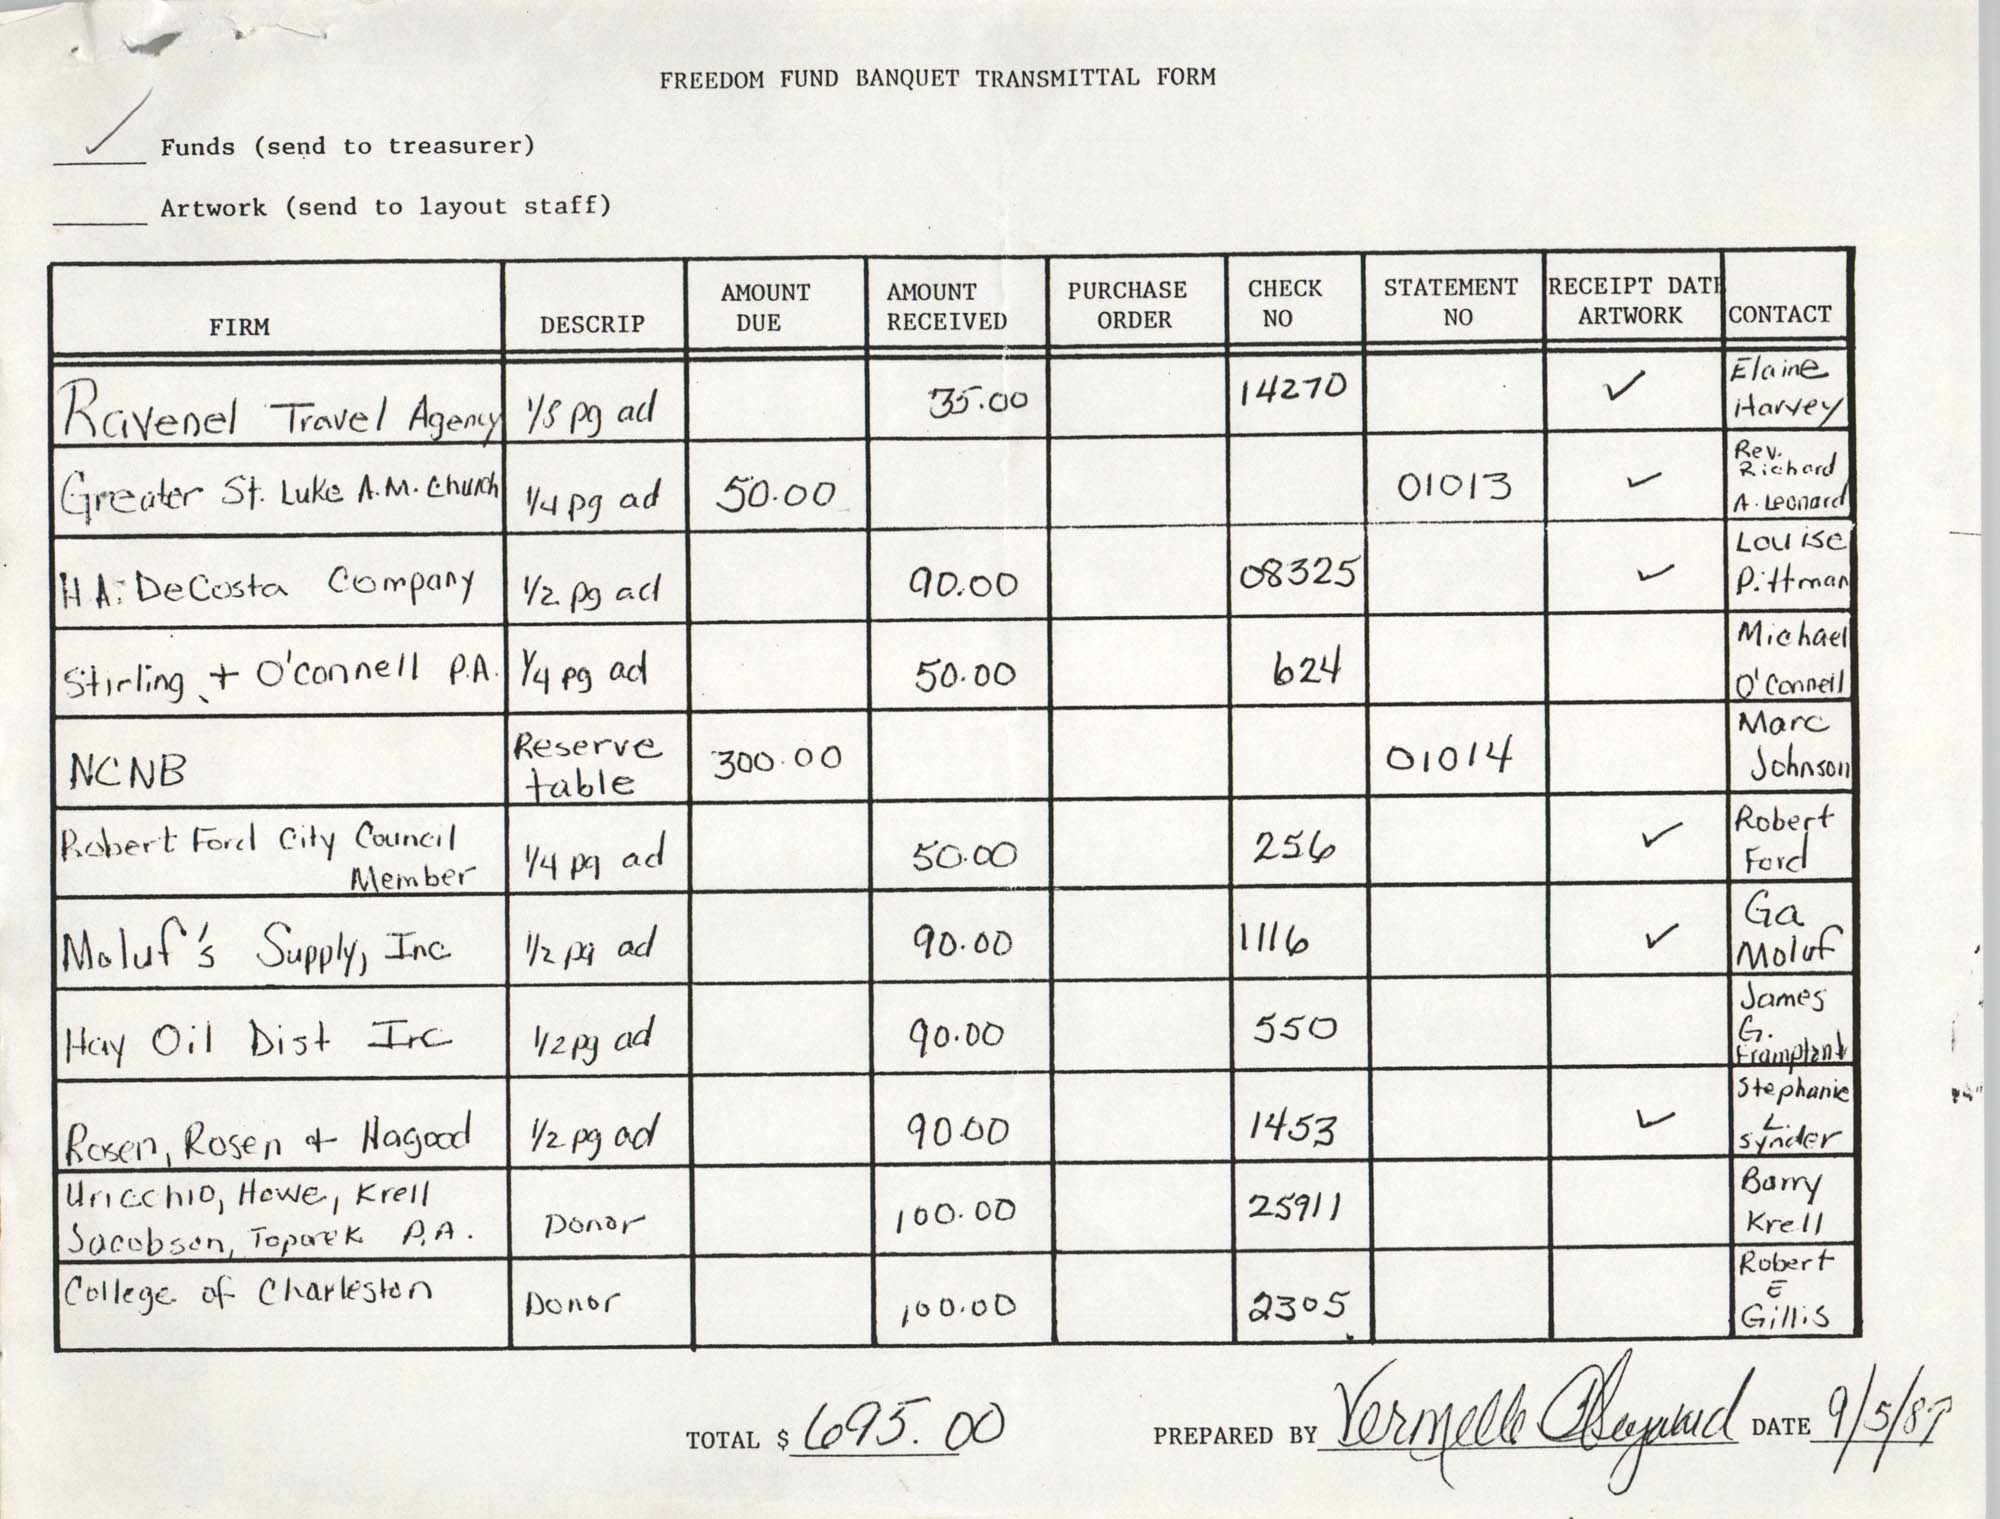 Freedom Fund Banquet Transmittal Forms, September 5, 1987, Page 1